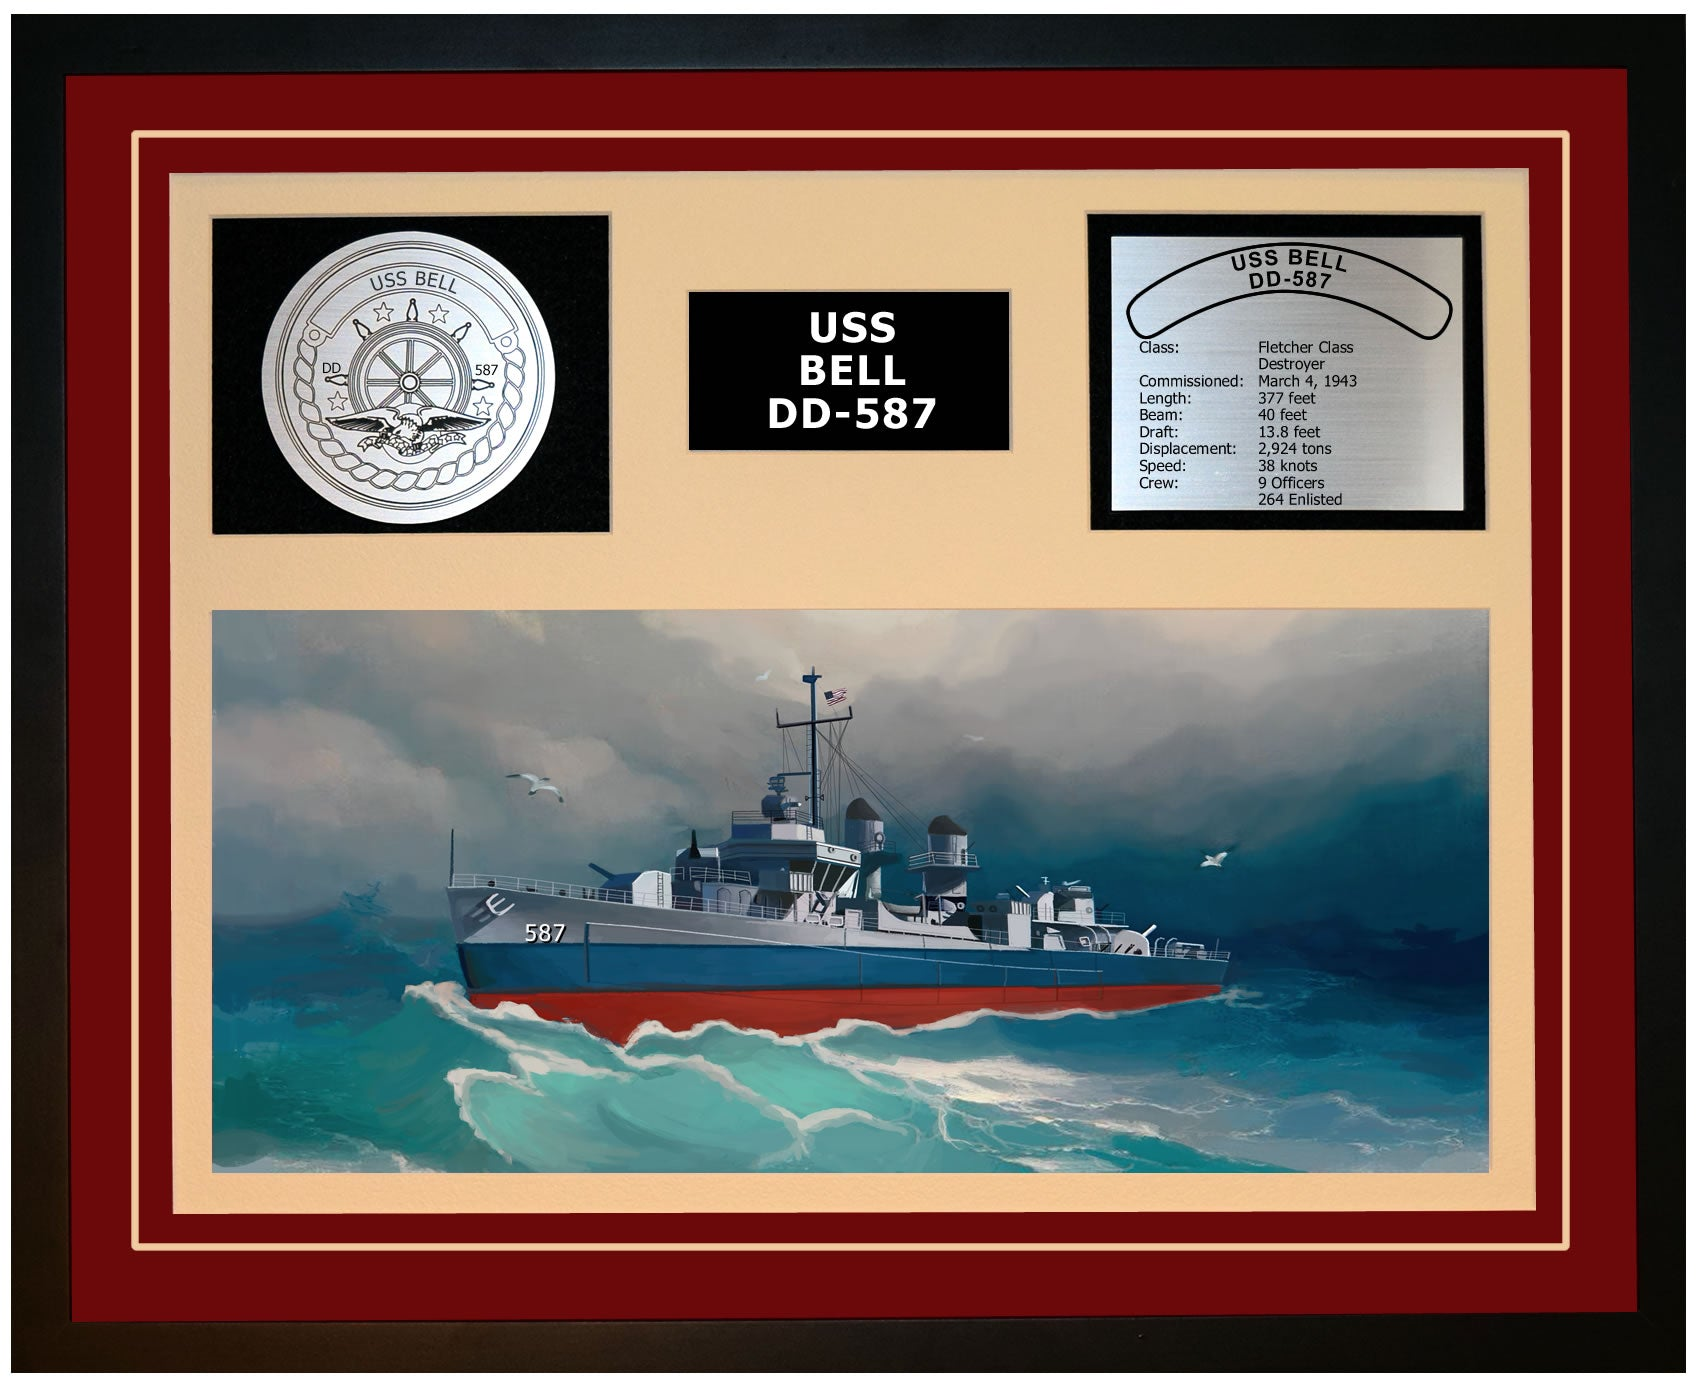 USS BELL DD-587 Framed Navy Ship Display Burgundy